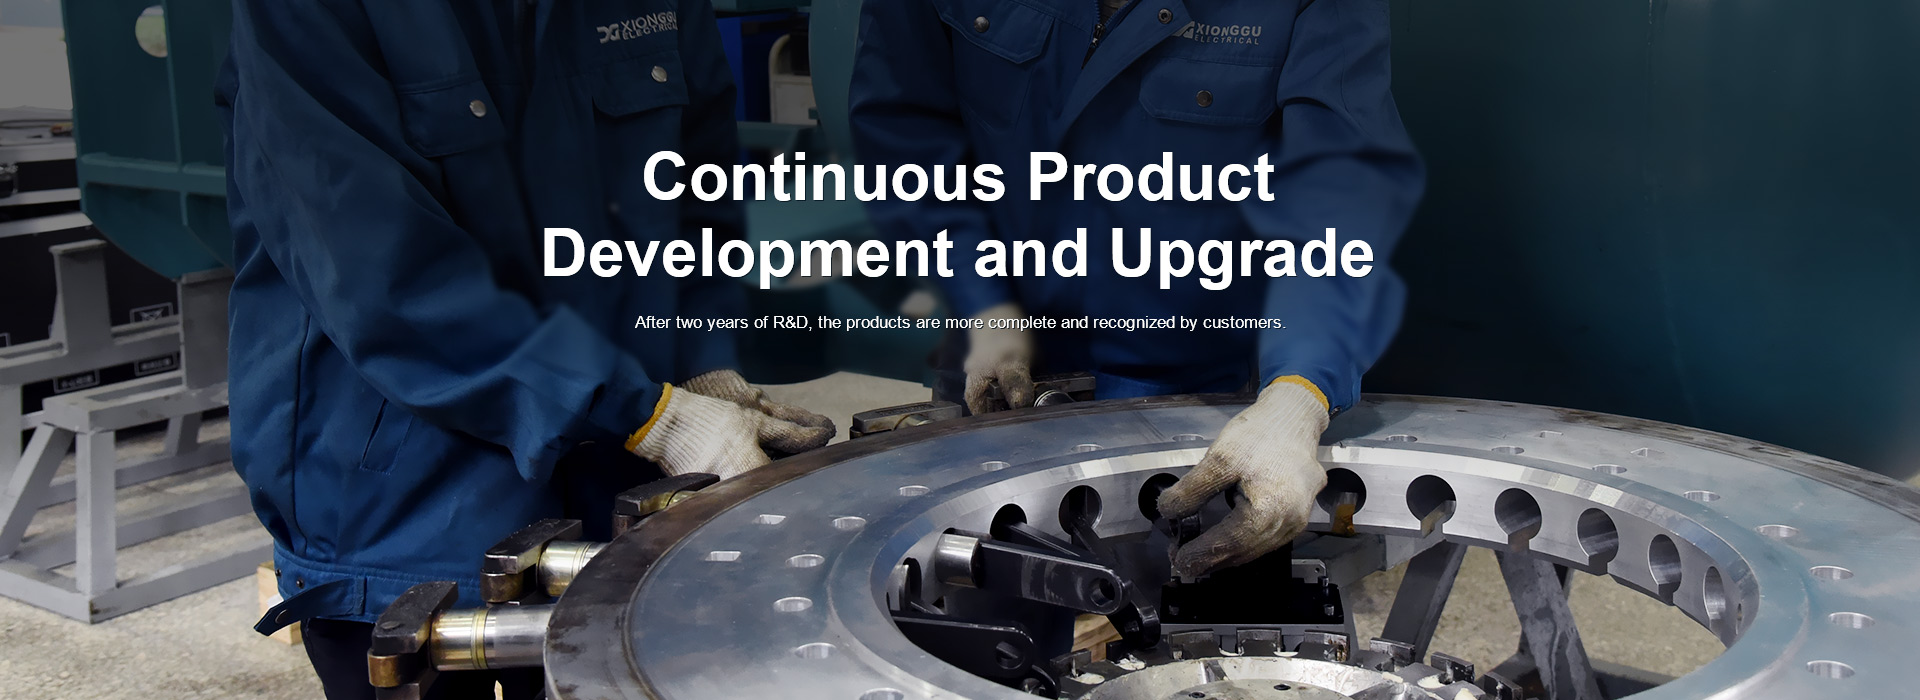 Continuous Product Development and Upgrade